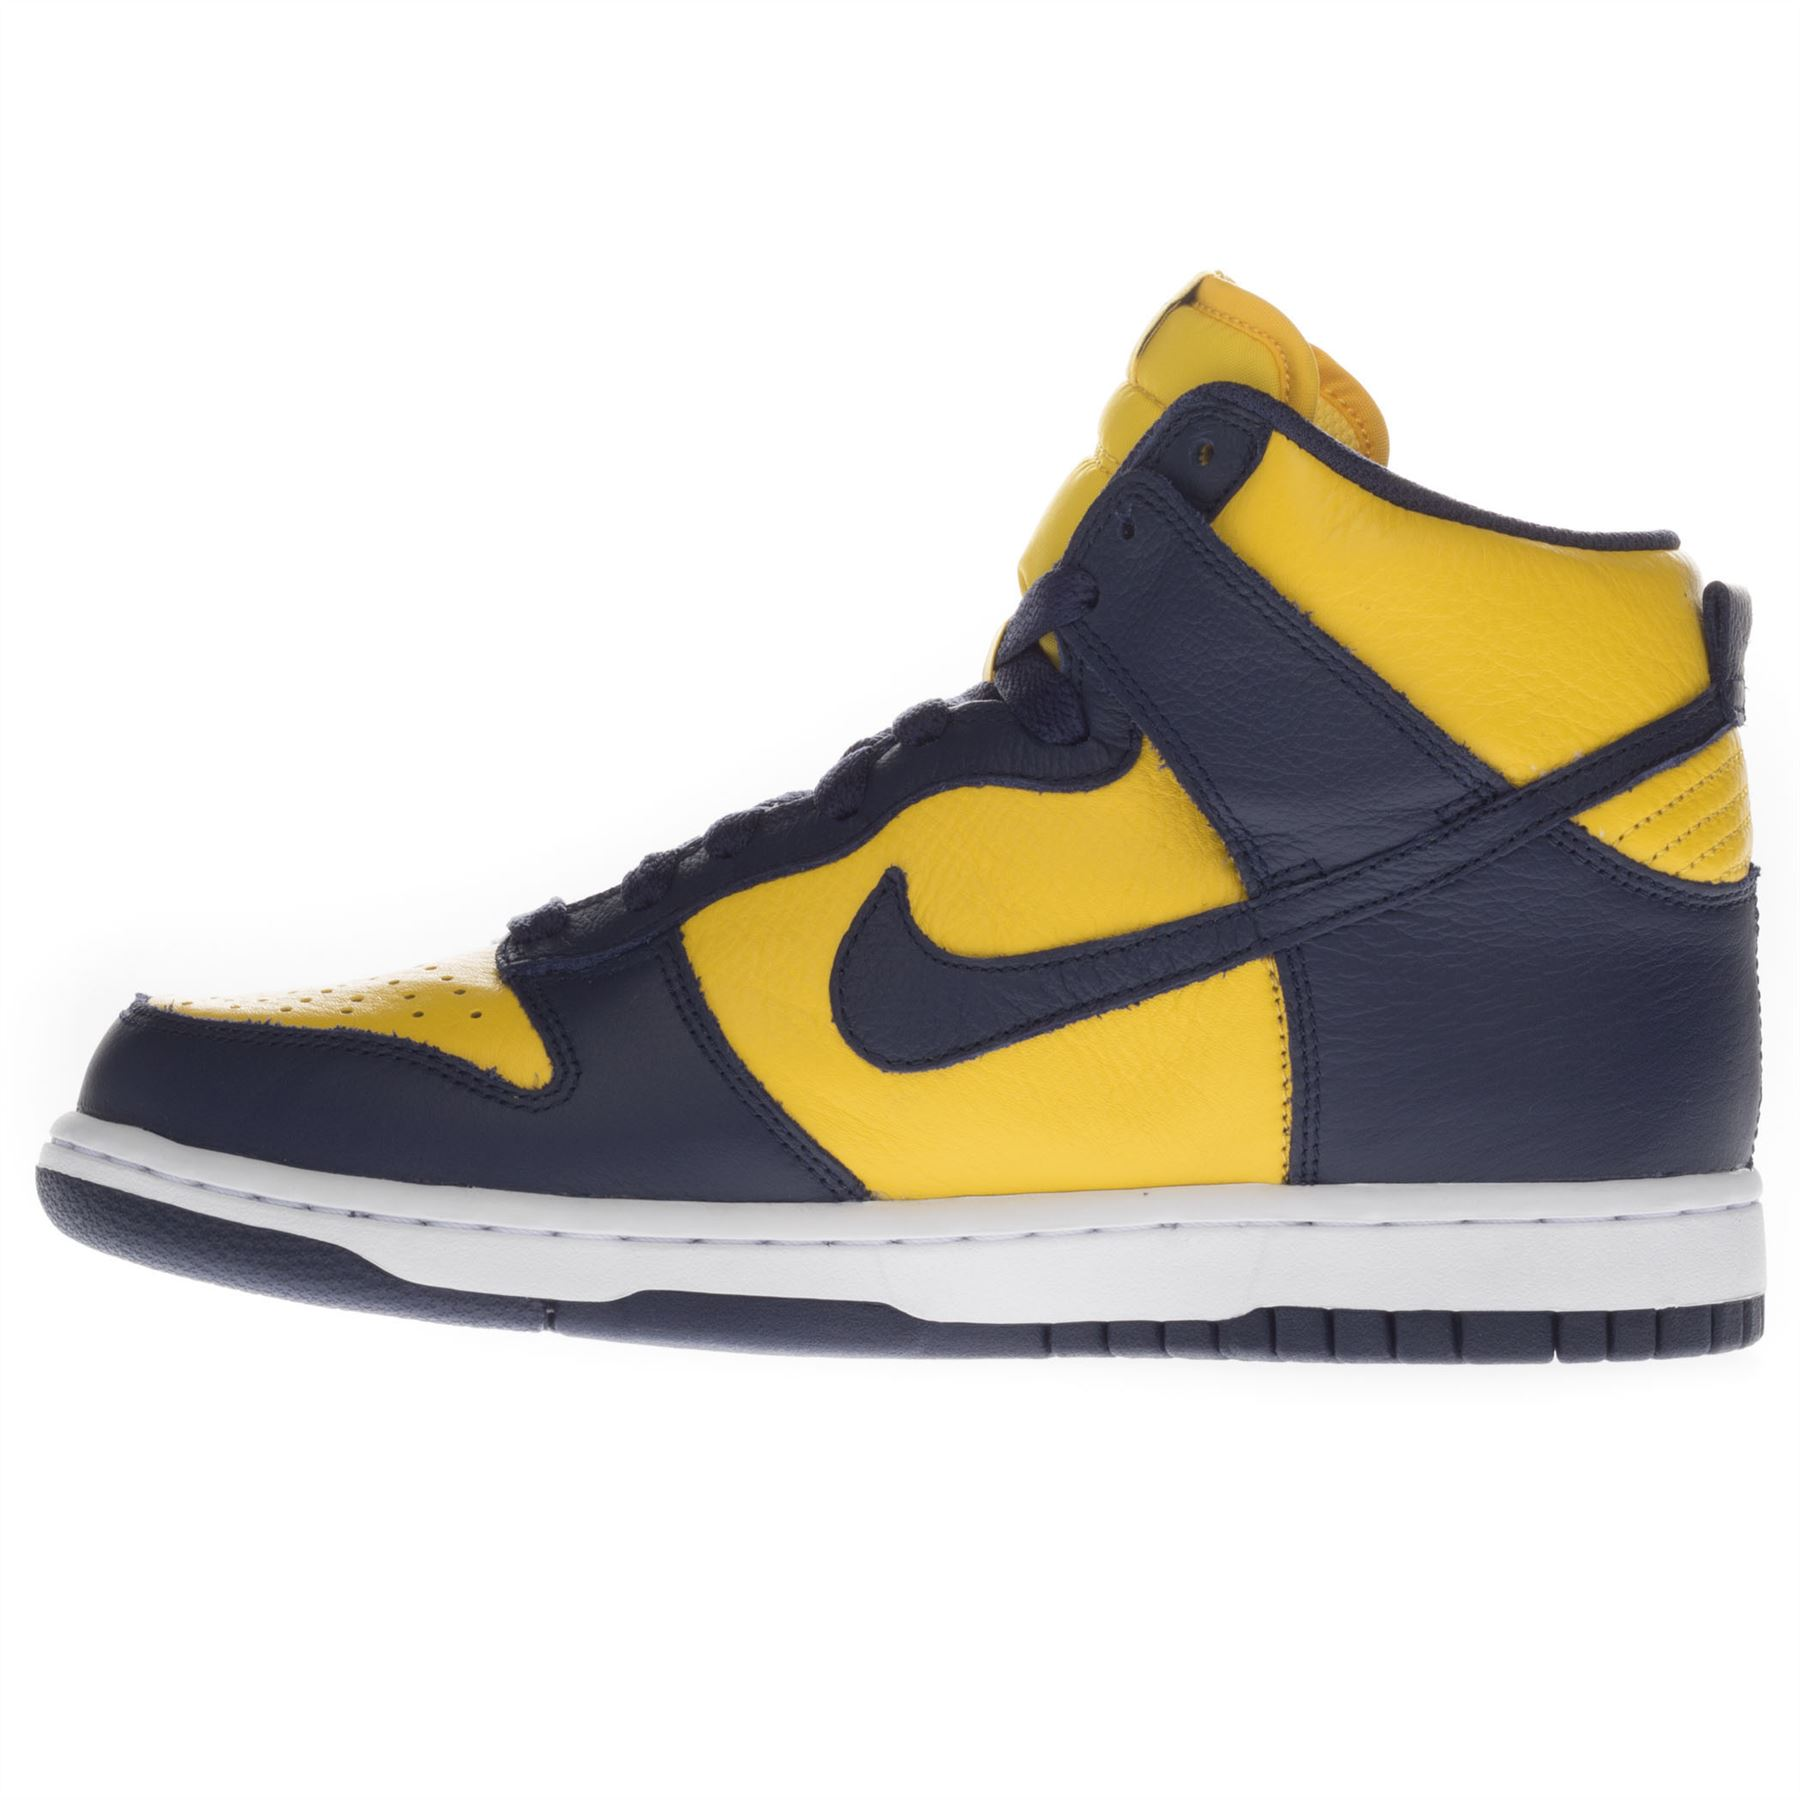 Basketball Qs Navyyellow Dunk Top Gym Sports Retro Nike Women's Hi ACqIFSt